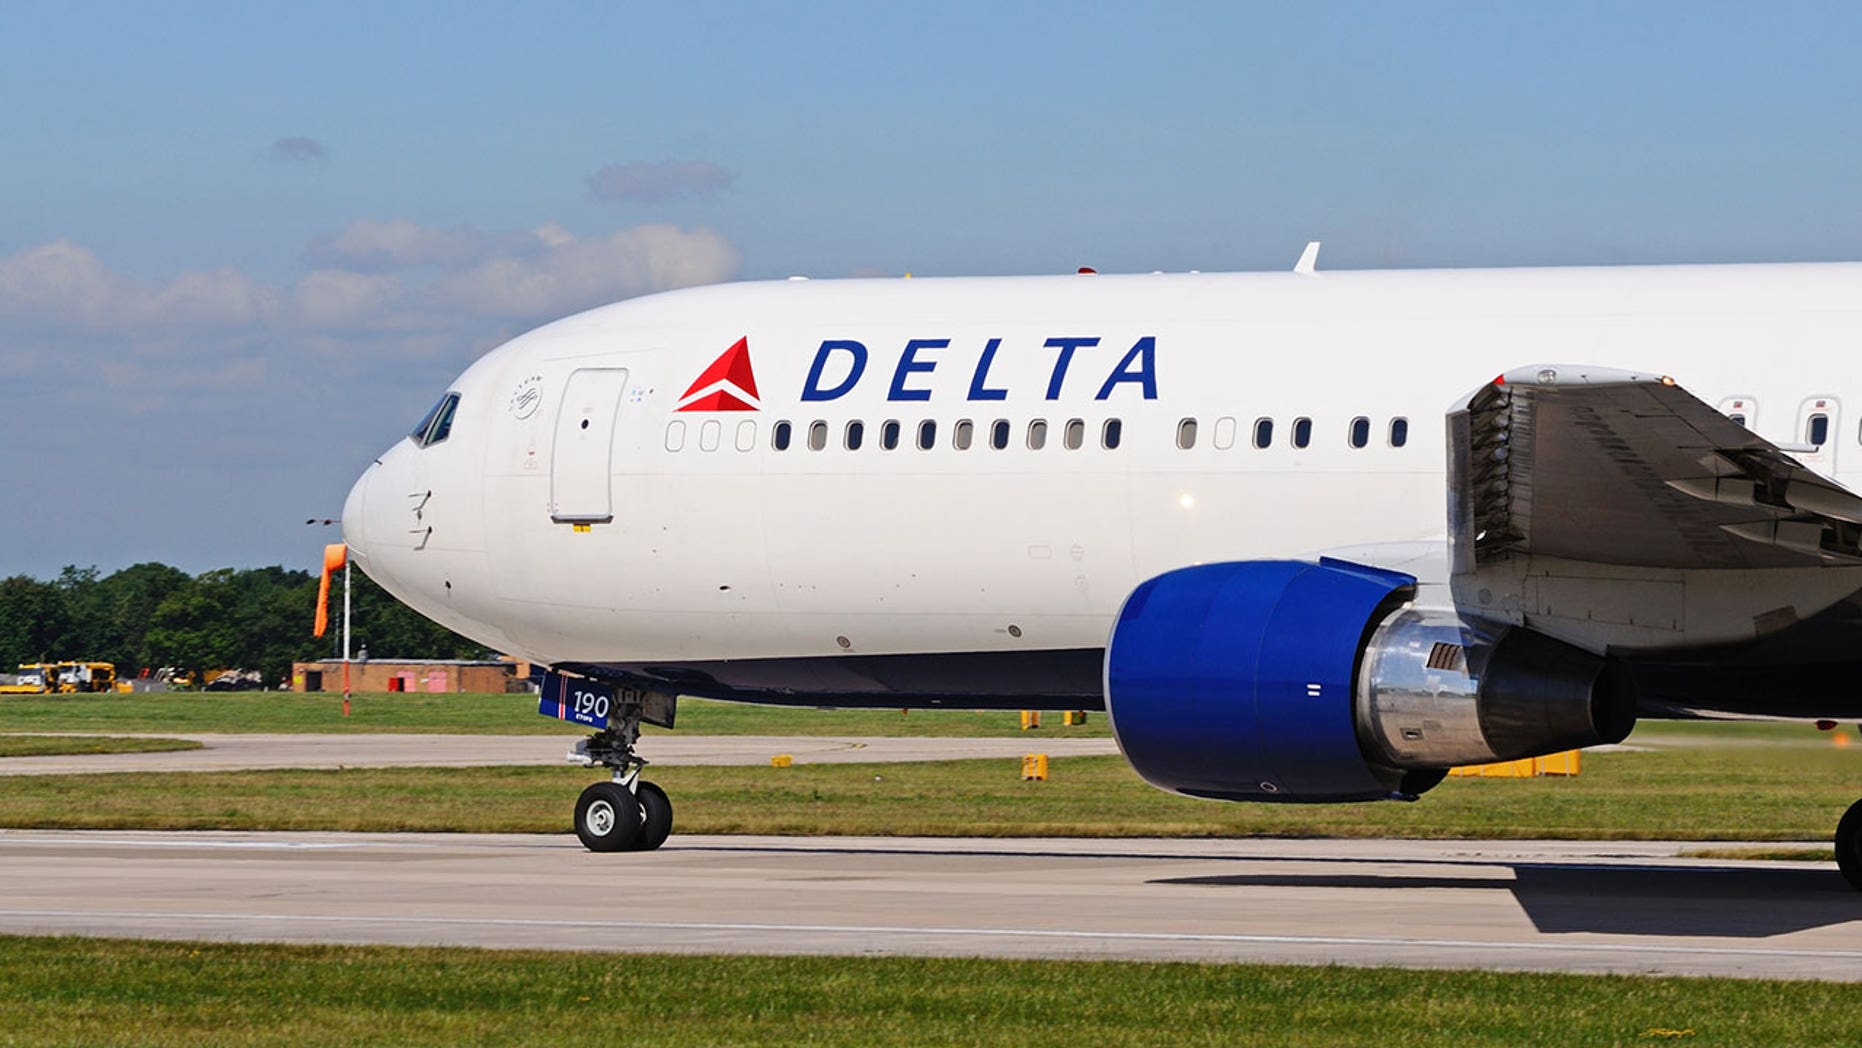 A Delta aircraft collided with an American plane waiting on the taxiway